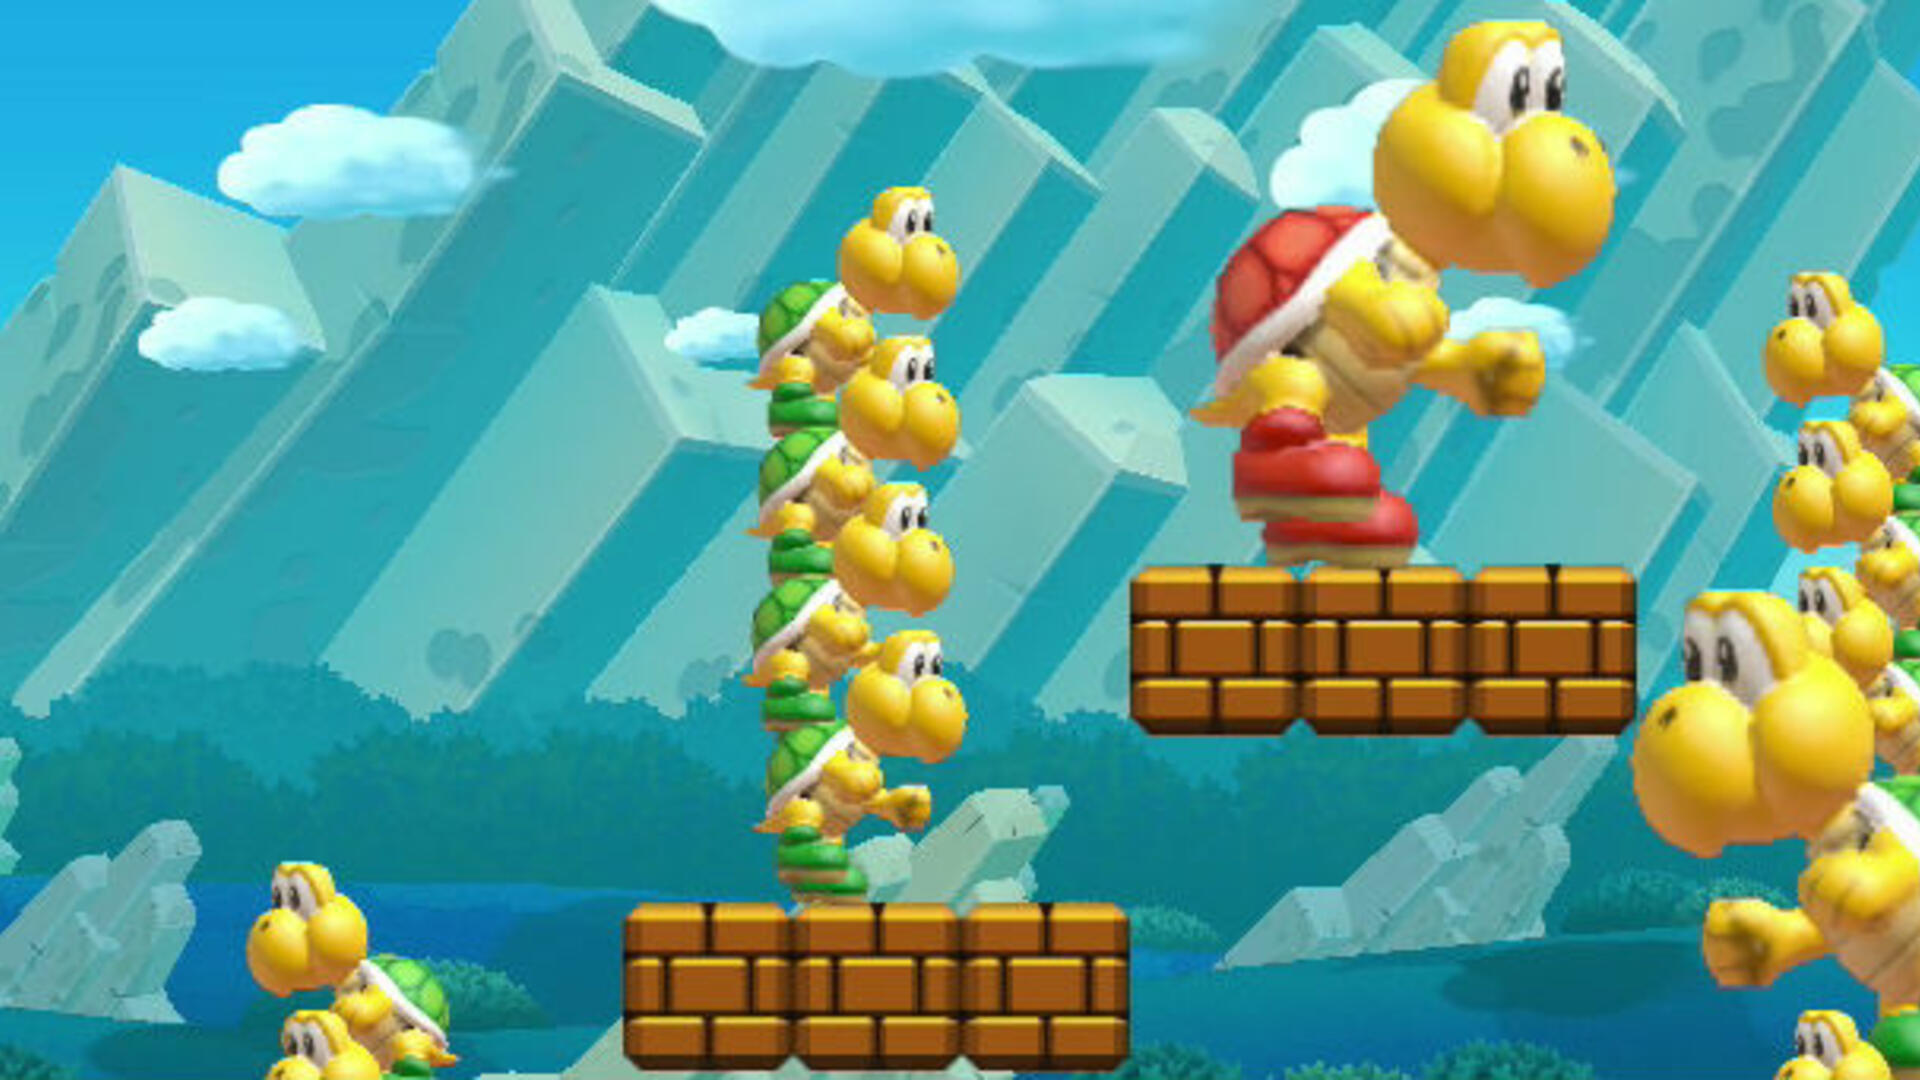 10 Things We Want to See in Super Mario Maker 2 for the